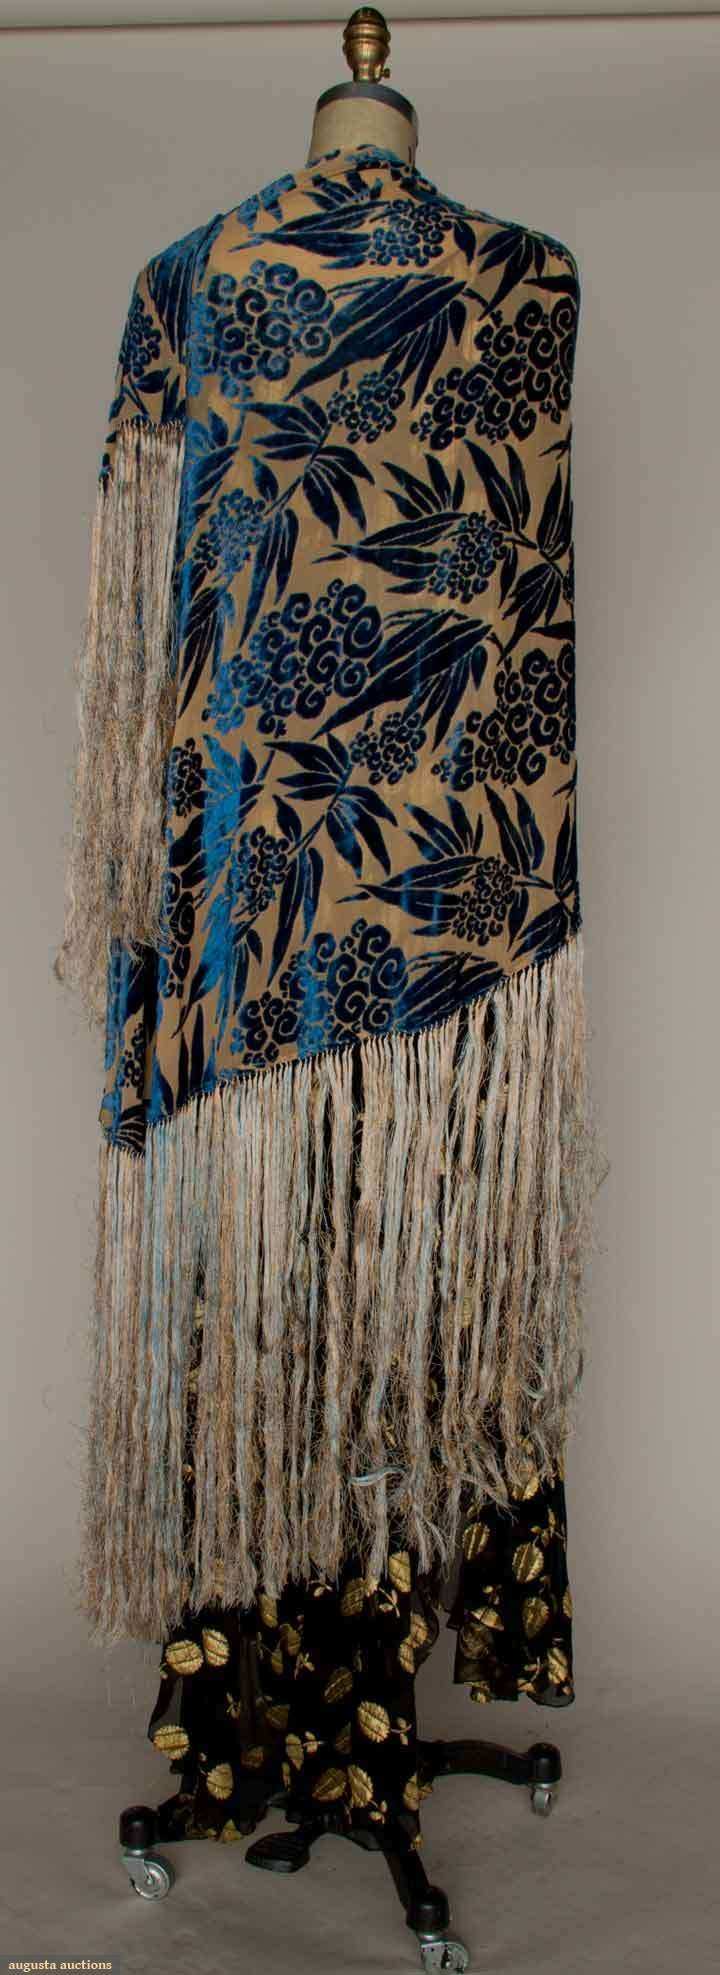 Deco Cut Velvet Shawl, 1930s, Augusta Auctions, March 21, 2012 NYC, Lot 226